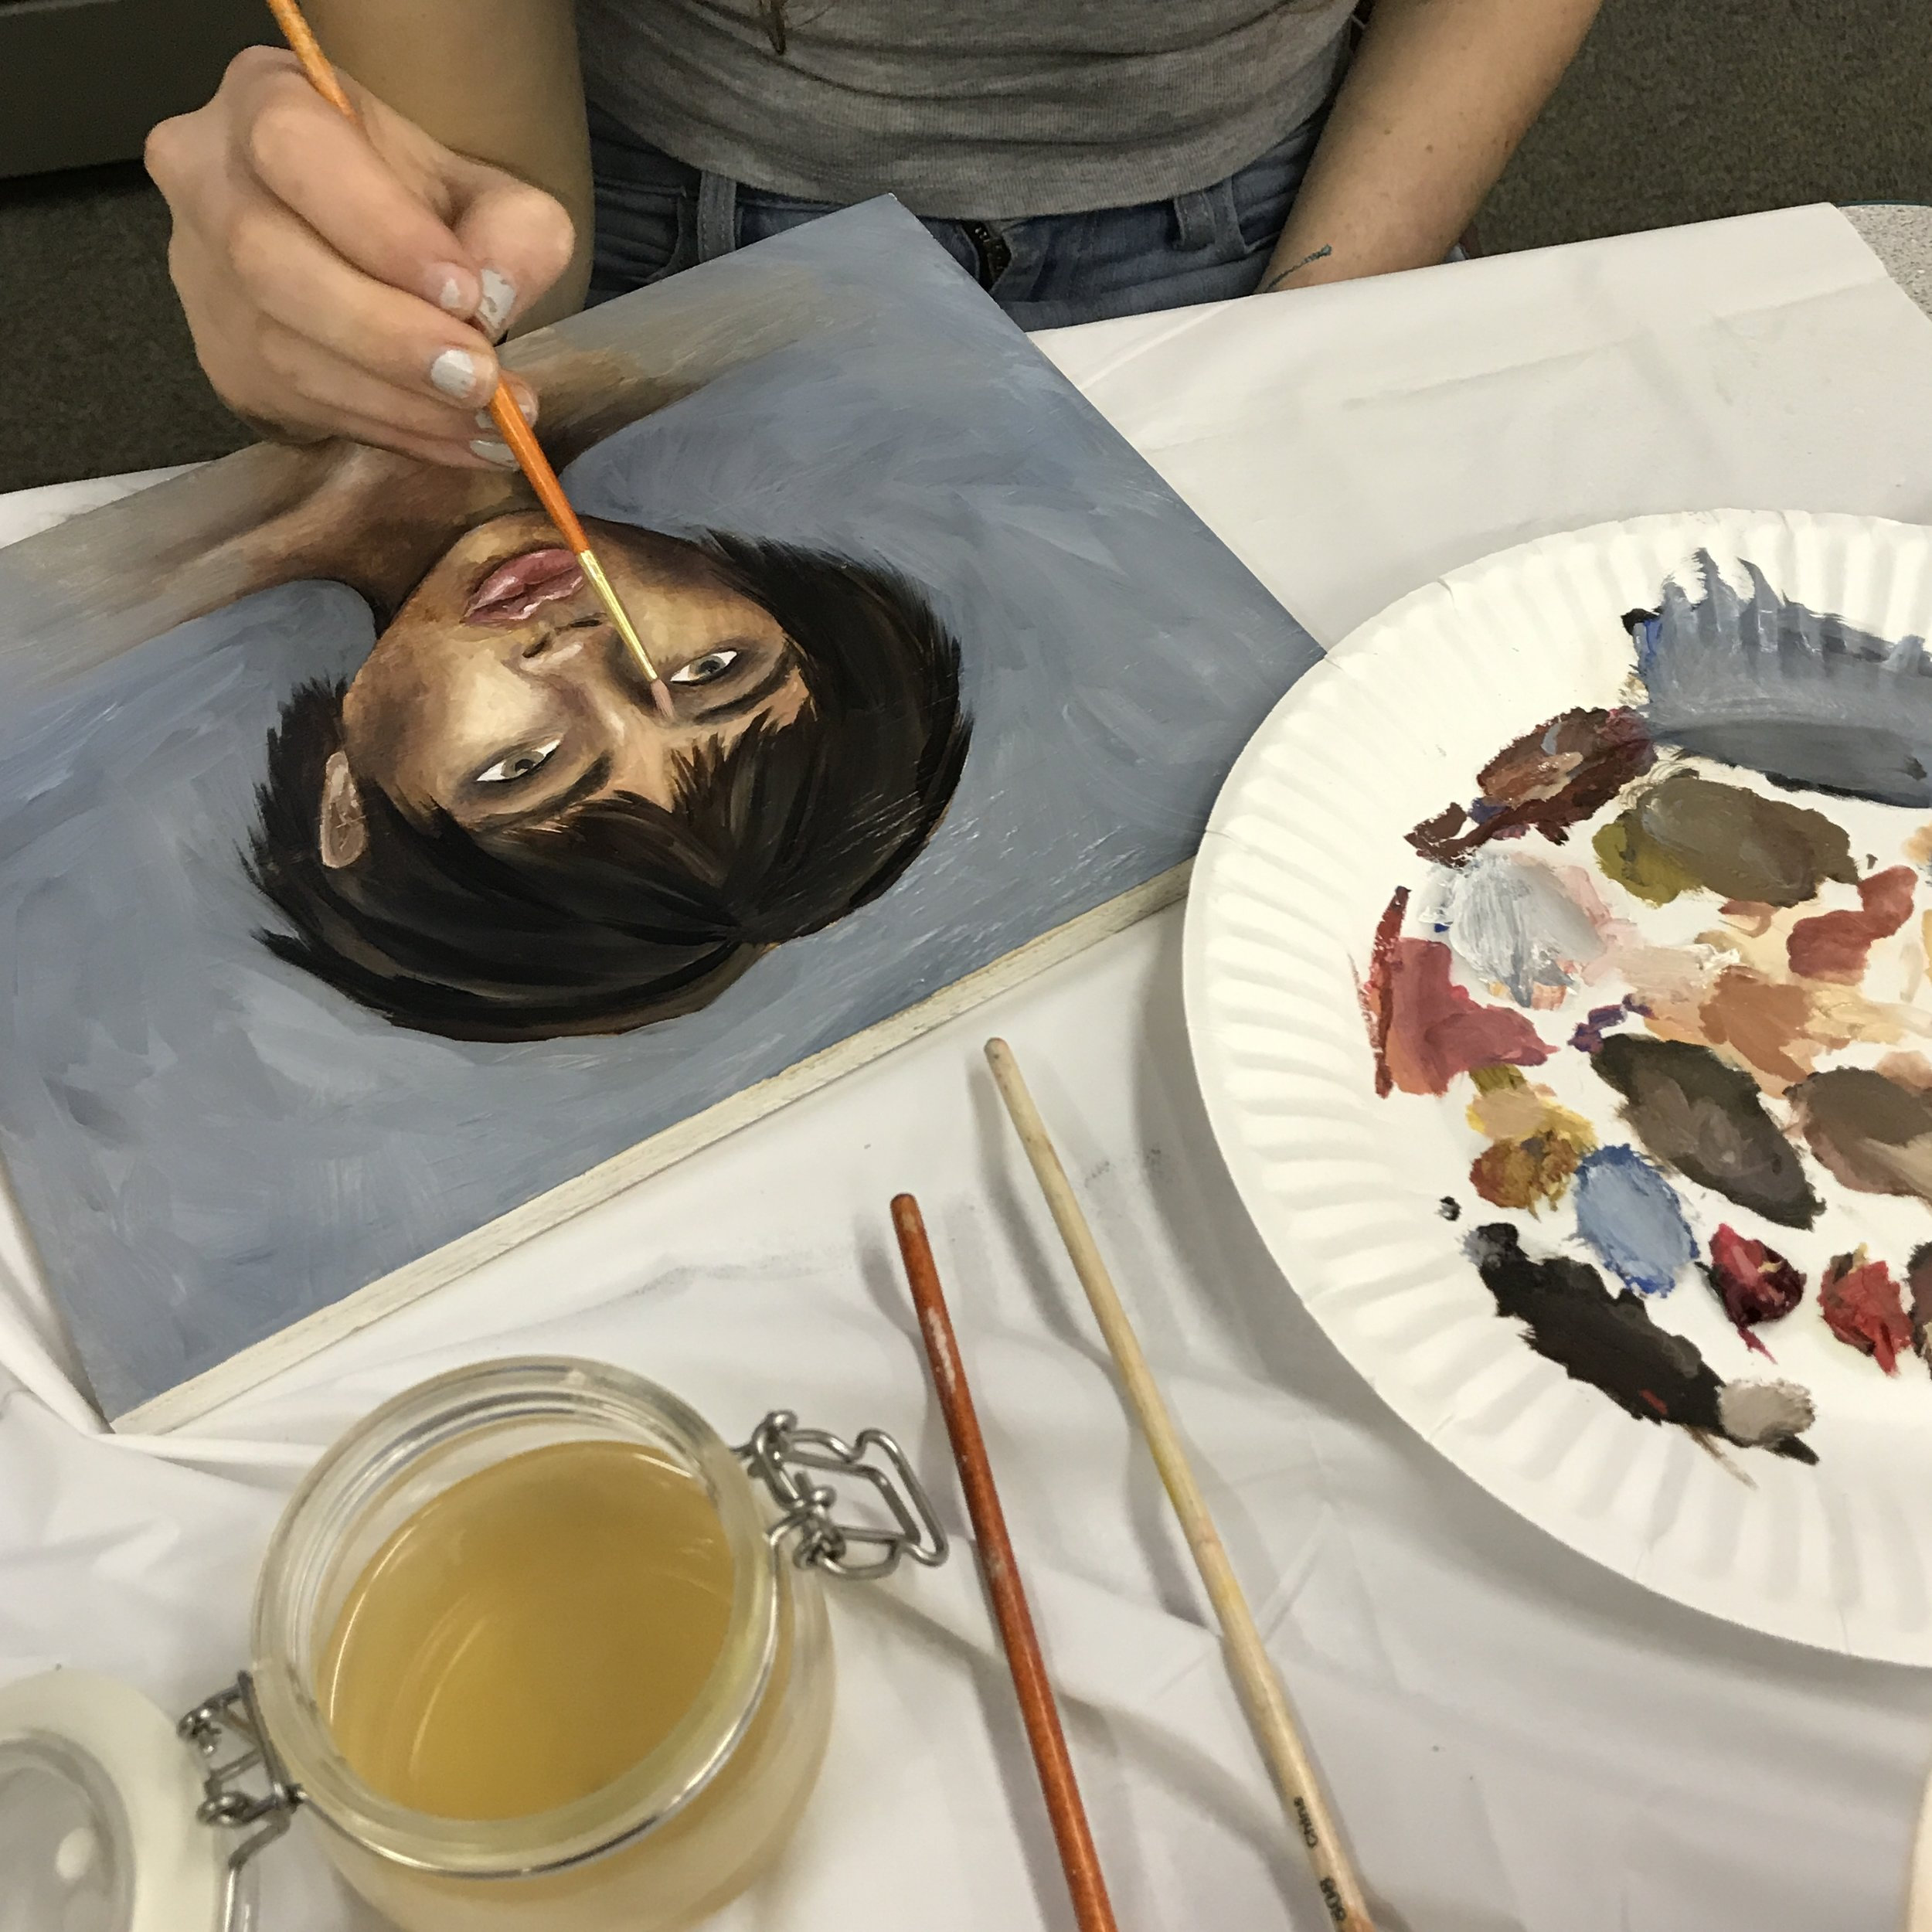 Teen Painting + Drawing - Monday 4:00-6:00